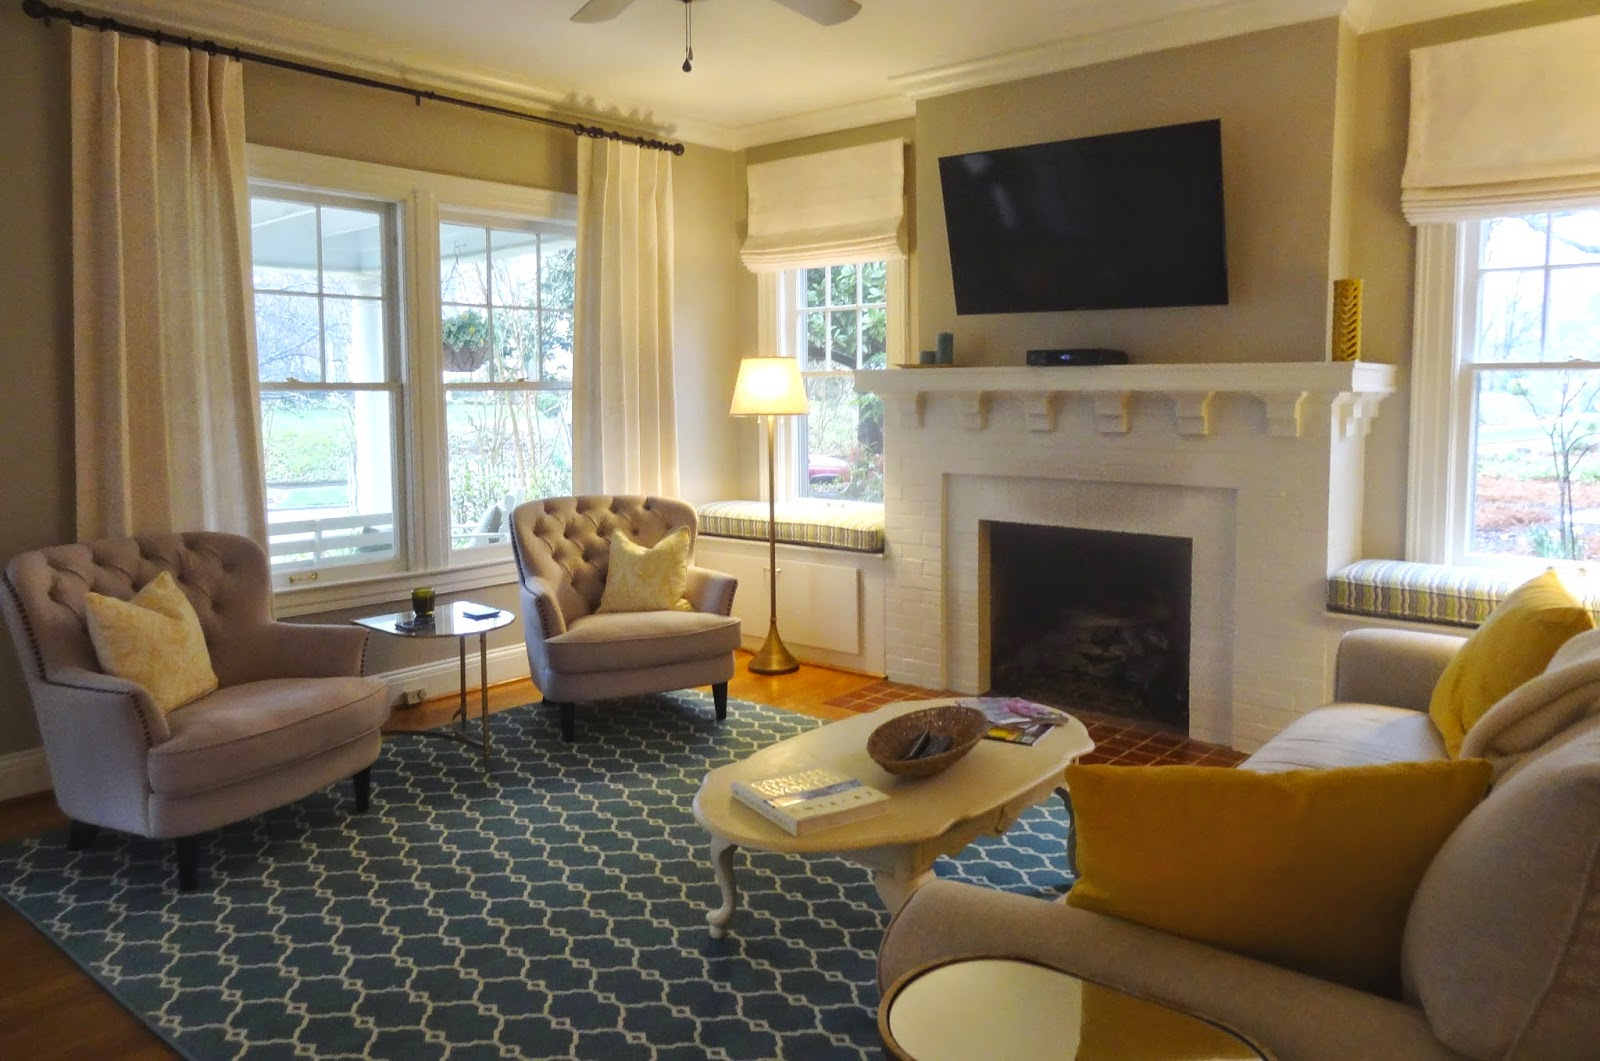 What Window Treatments Are Best With A Seat